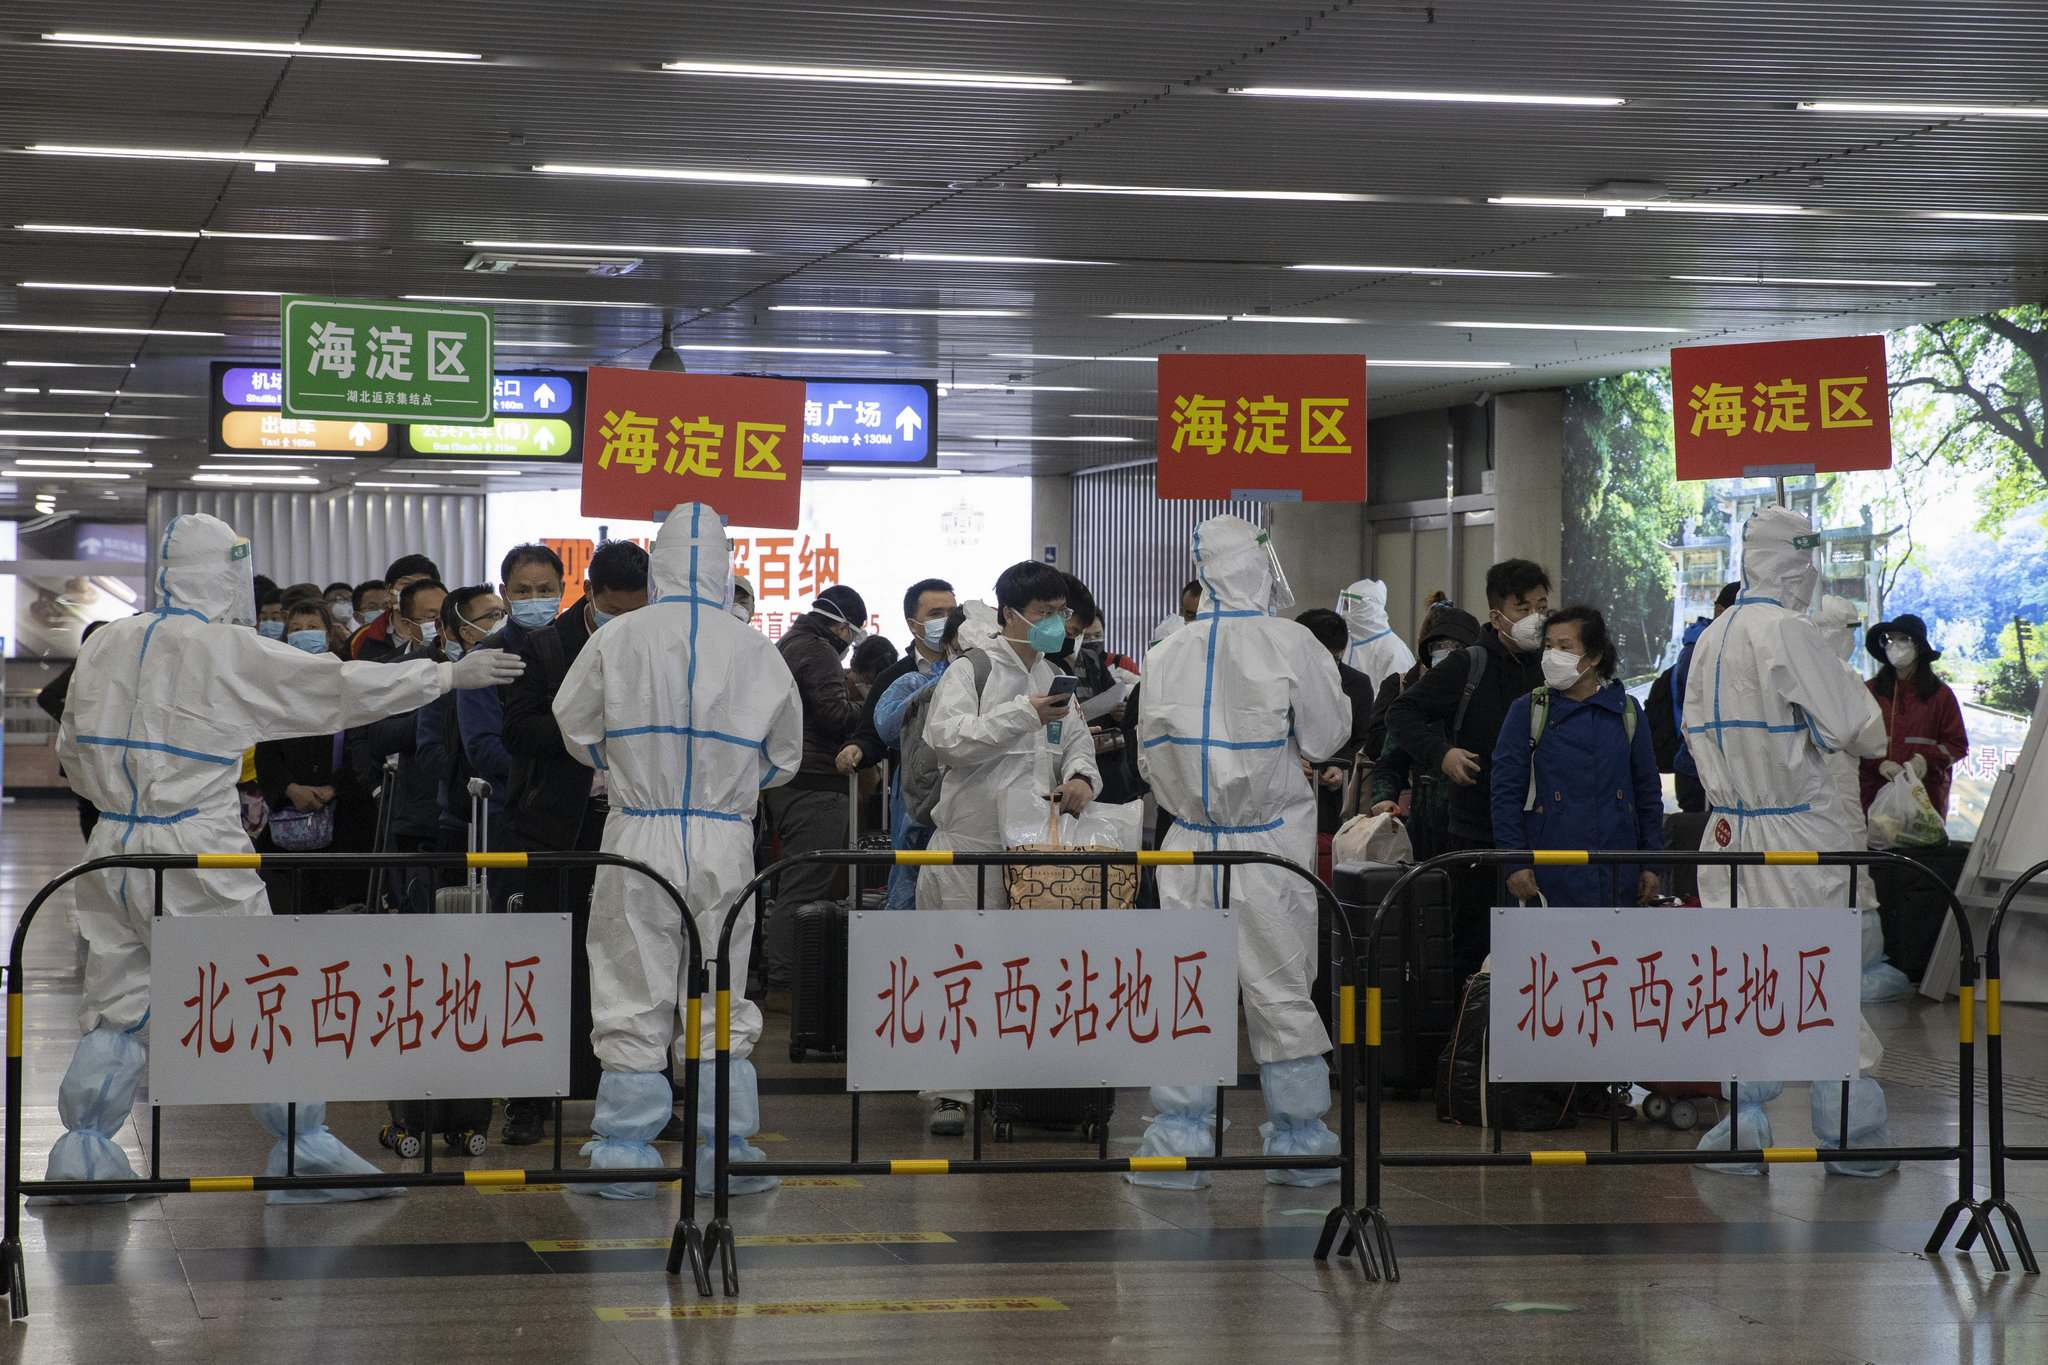 Passengers from Wuhan are sorted by district after they arrive on a high speed train in Beijing on Sunday, April 19, 2020. Wuhan, the city at the center of the global coronavirus epidemic, lifted a 76-day lockdown early April and allowed people to leave for destinations across China. (AP Photo/Ng Han Guan)</p>